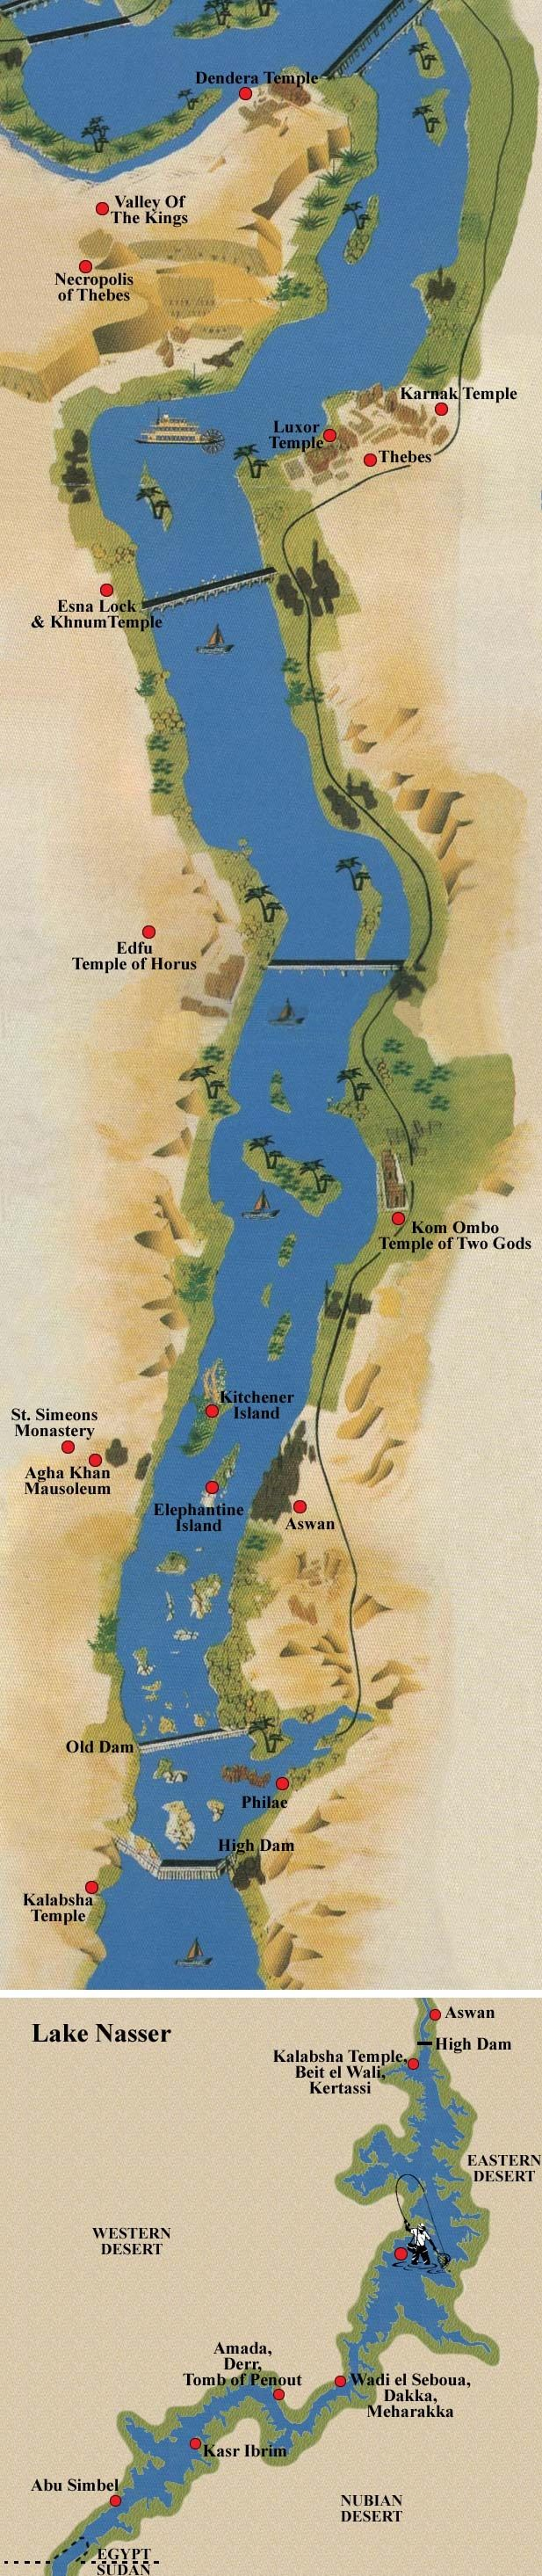 map of Egypt the Nile flows from